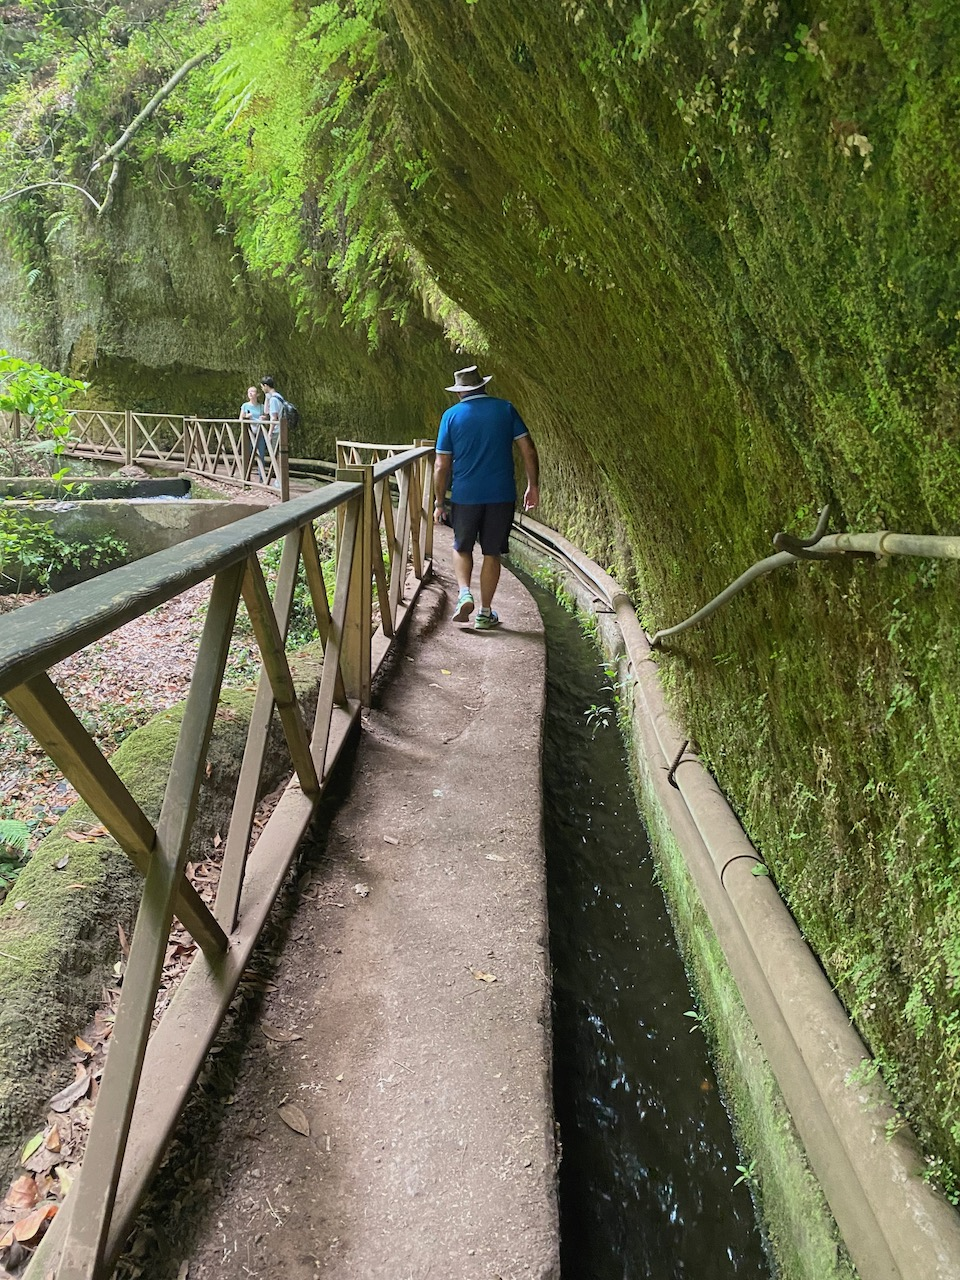 Mike walking next to the aqueduct